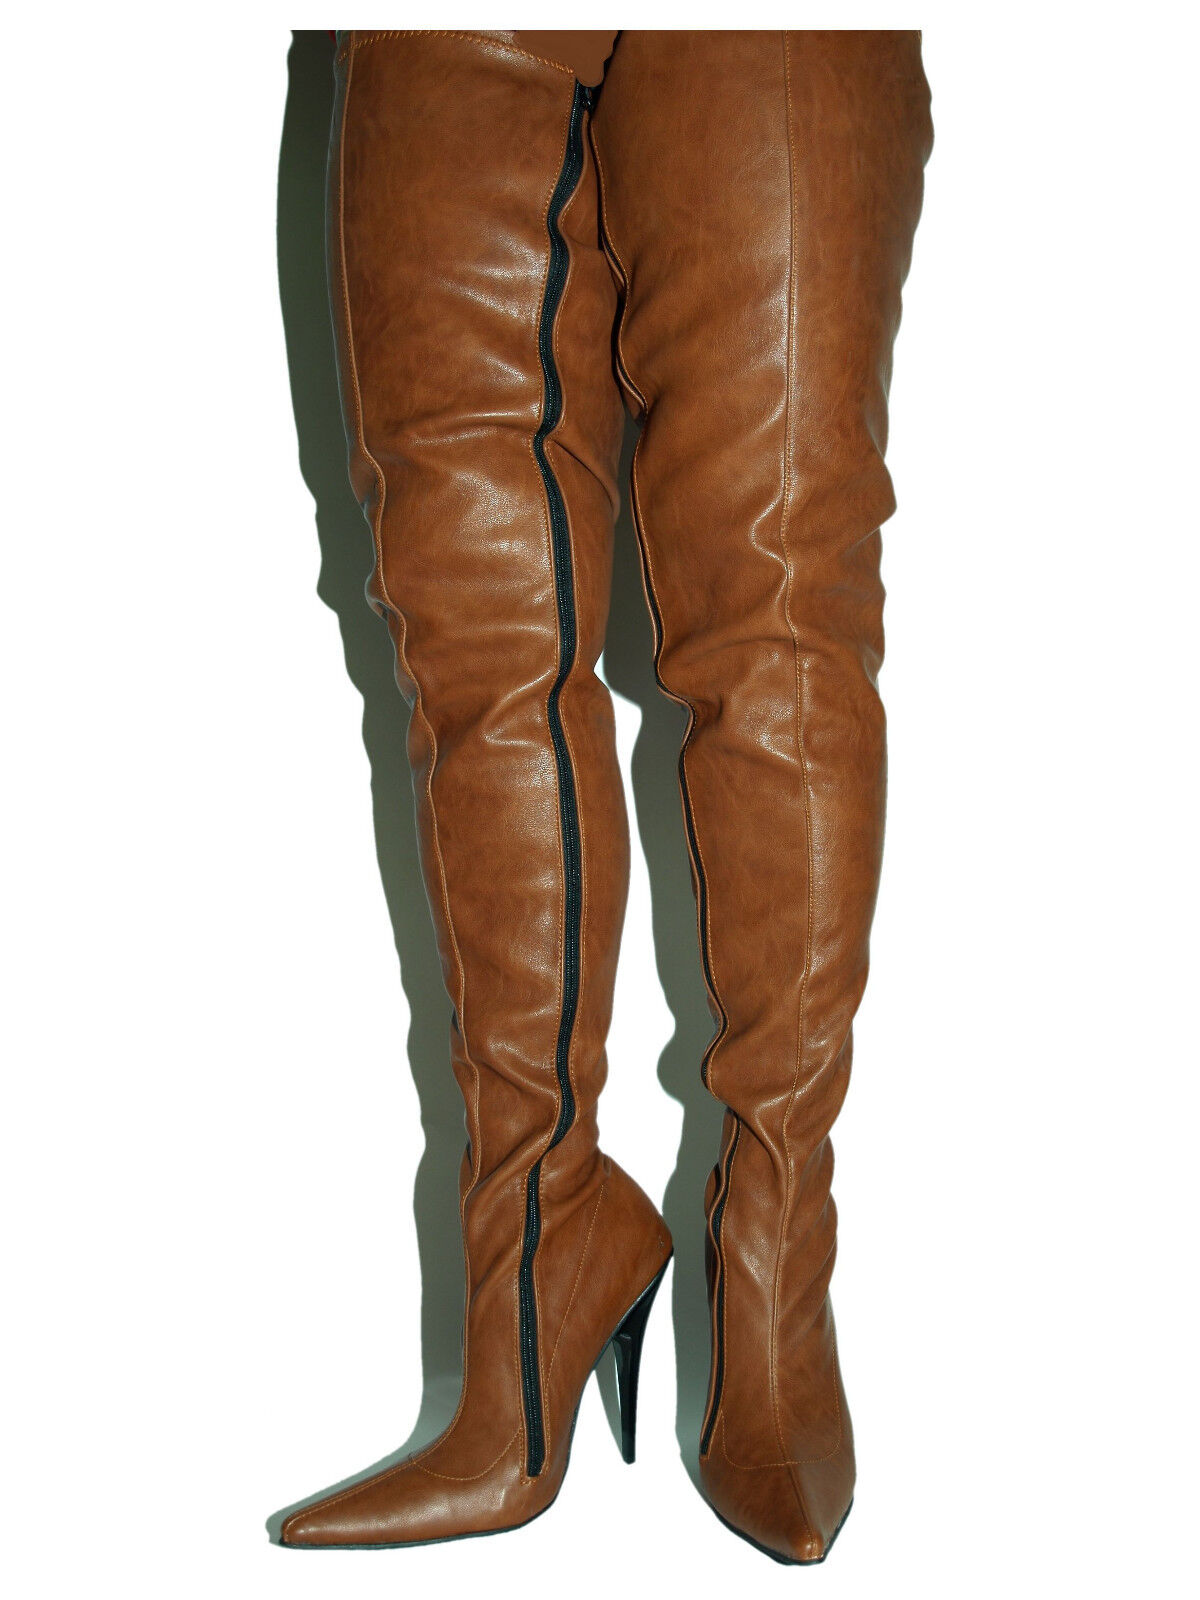 PROMOTIONS IMITATION LEATHER HIGHS BOOTS SIZE 5-16 HEELS-5,5 -13  PRODUCE POLAND